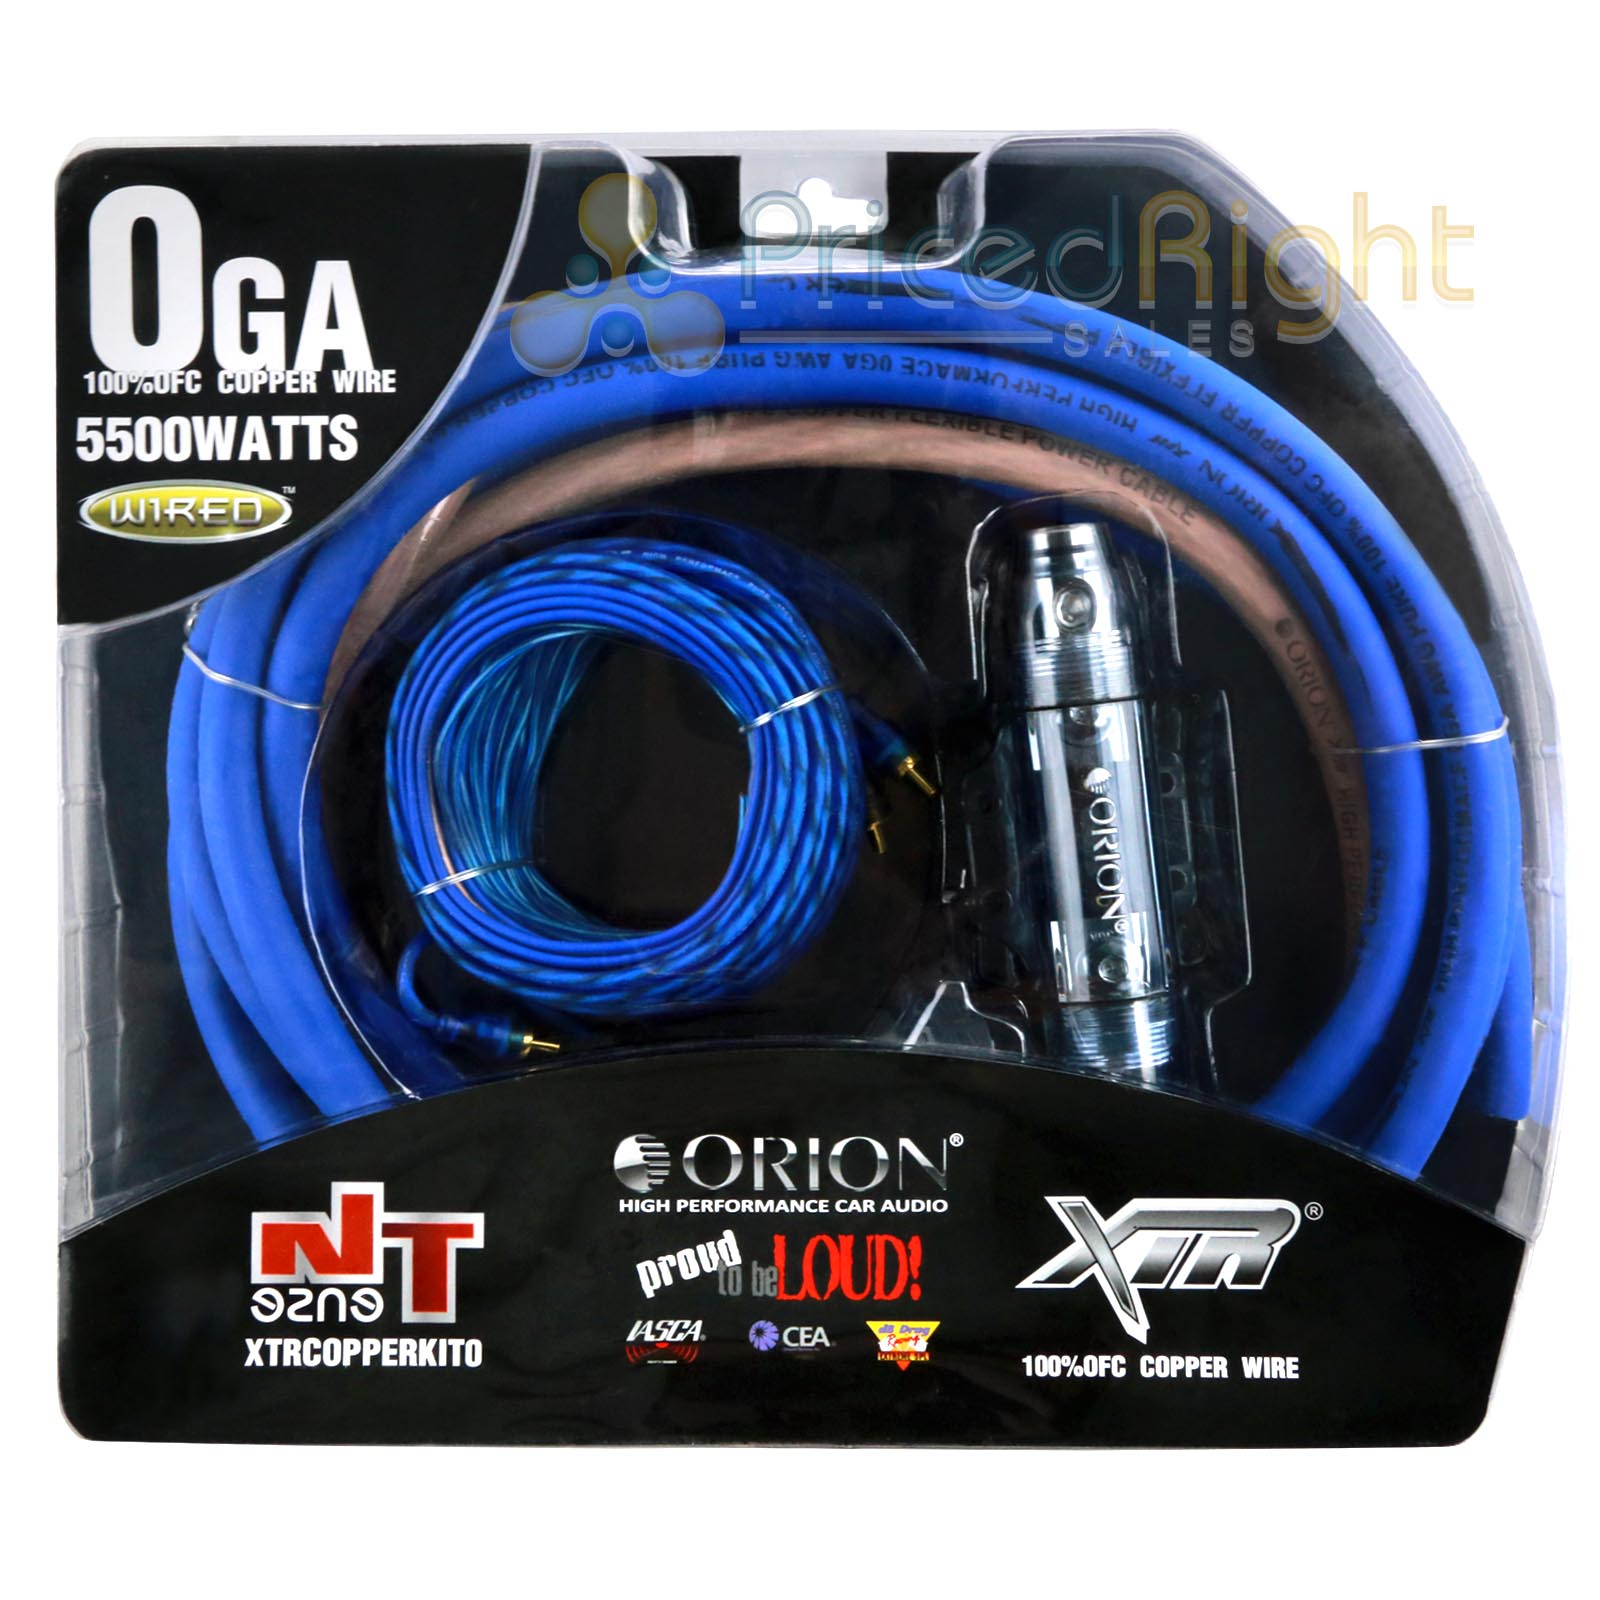 Orion True Ofc 0 Gauge Complete Amp Wiring Kit 100 Pro 4 Amplifier Install Car Audio Cables Pure Copper Wire